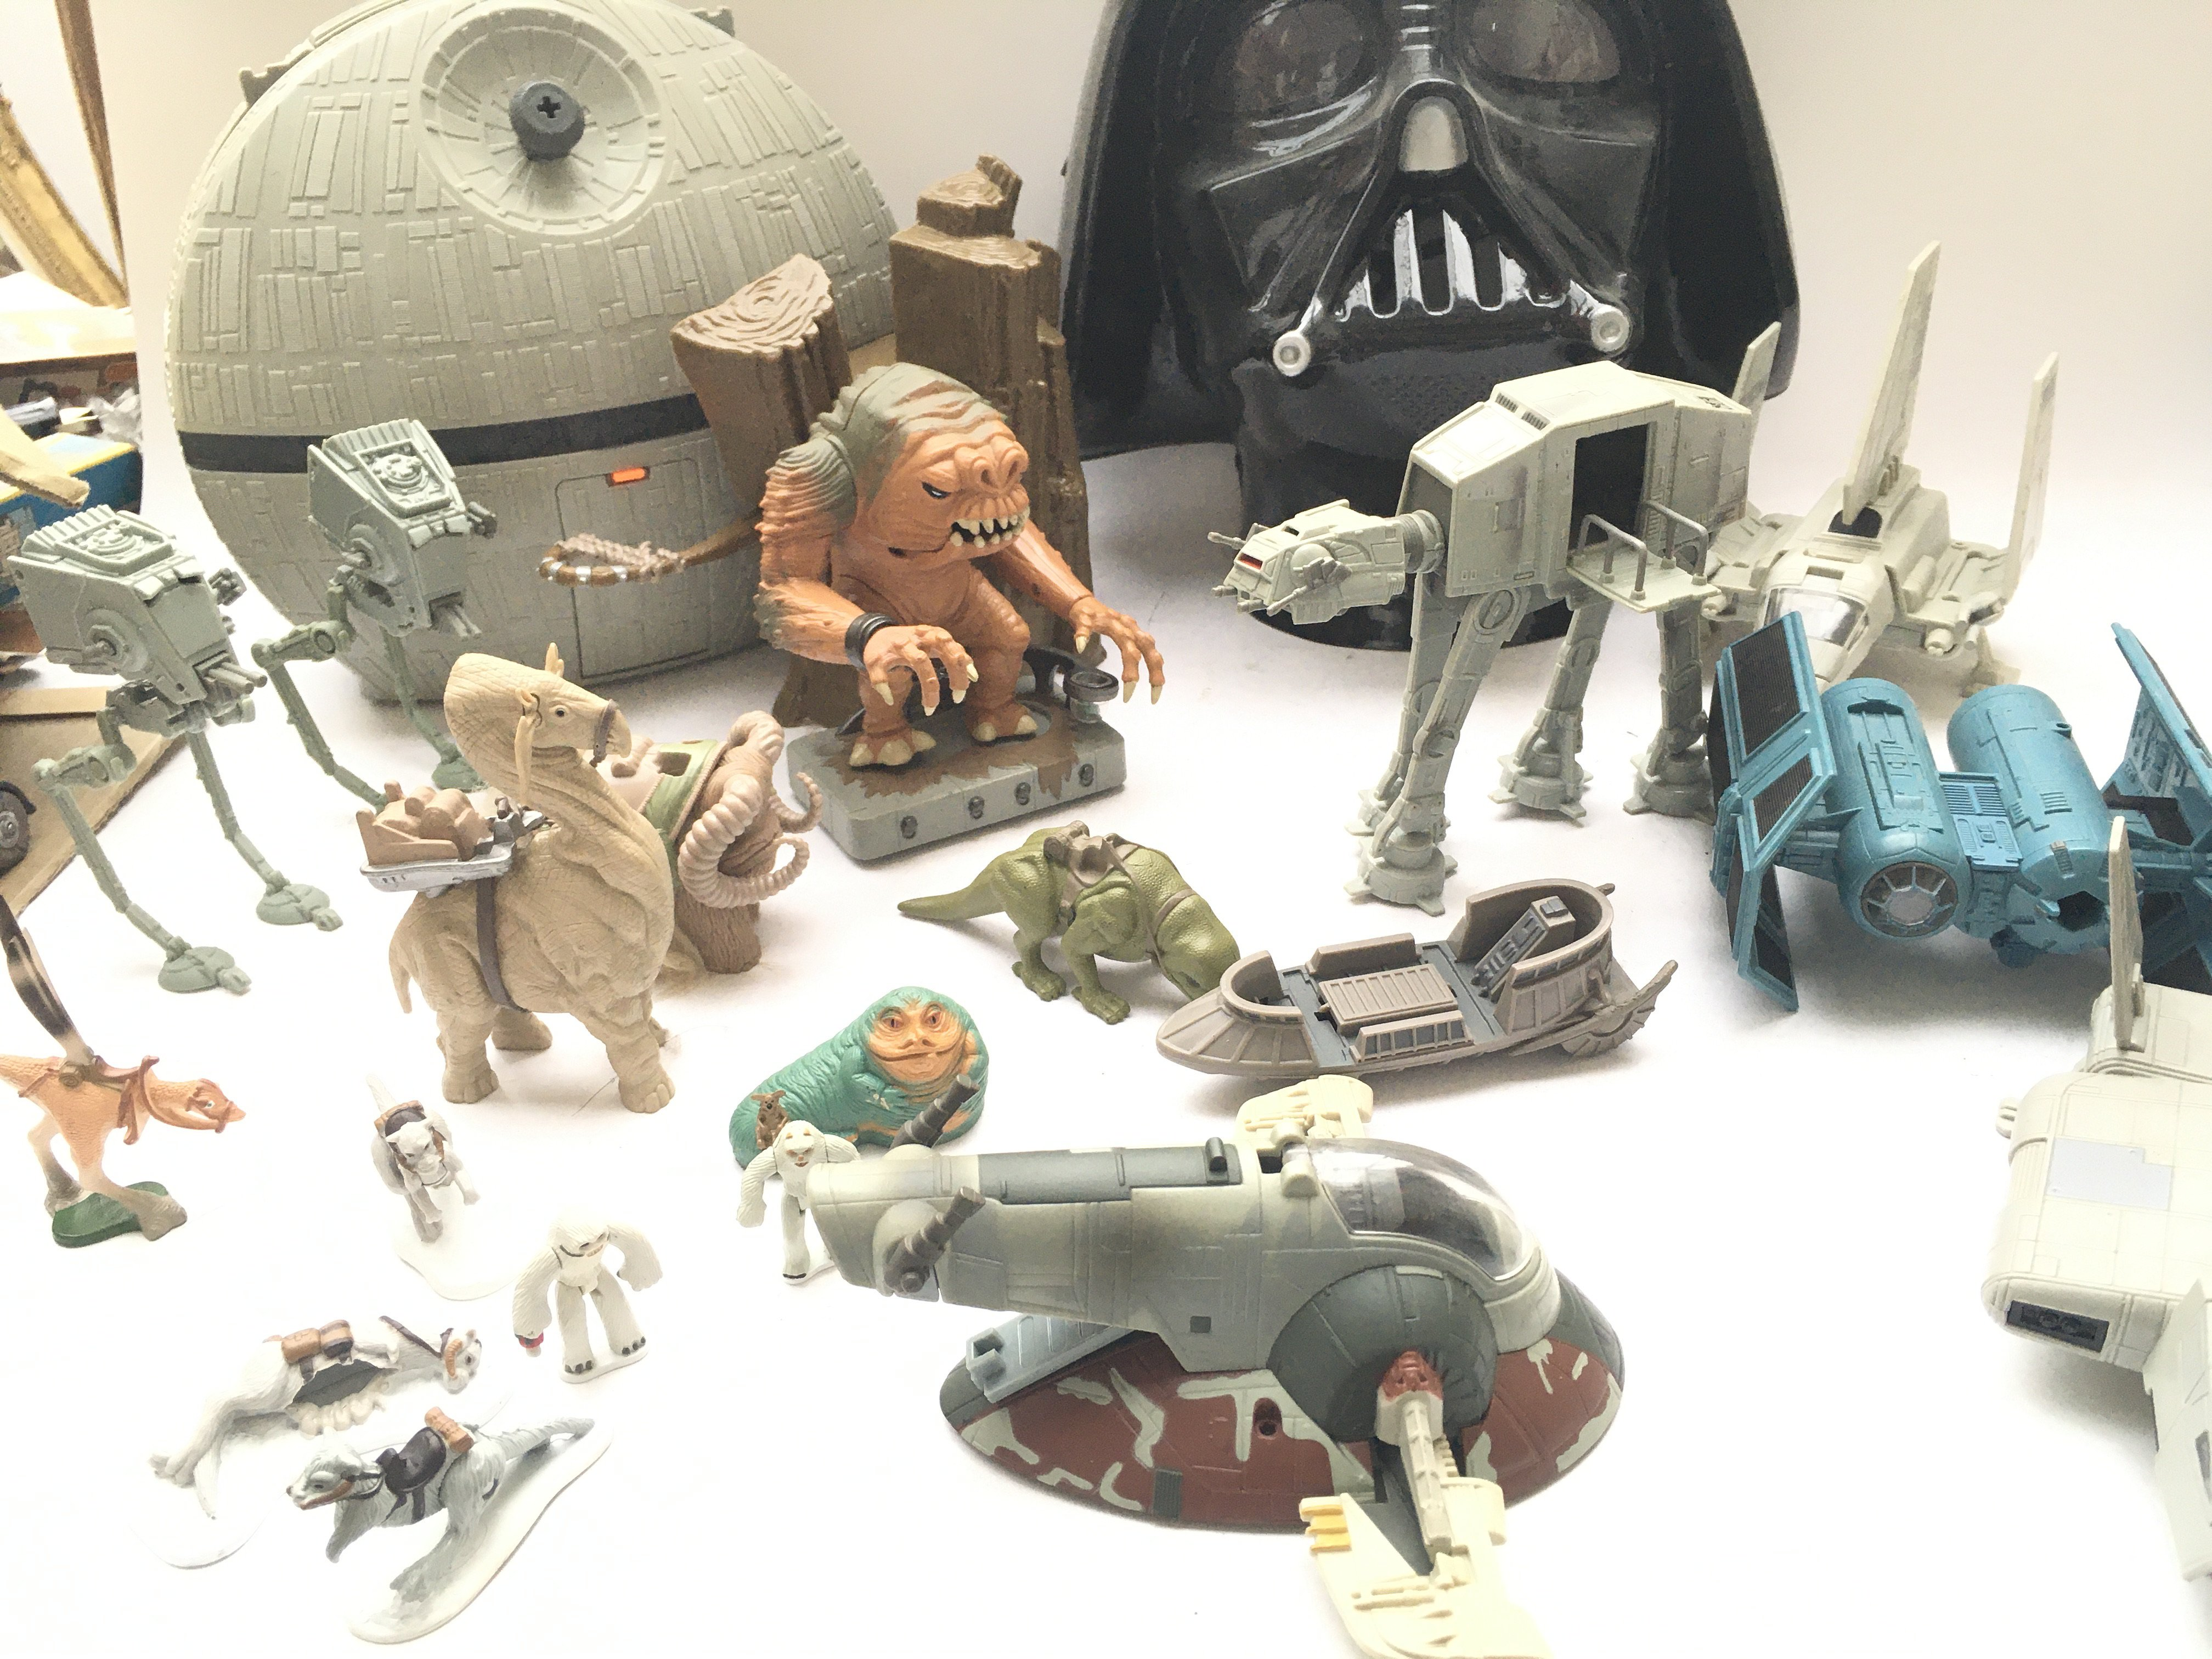 A Box Containing a Collection of Loose Star Wars A